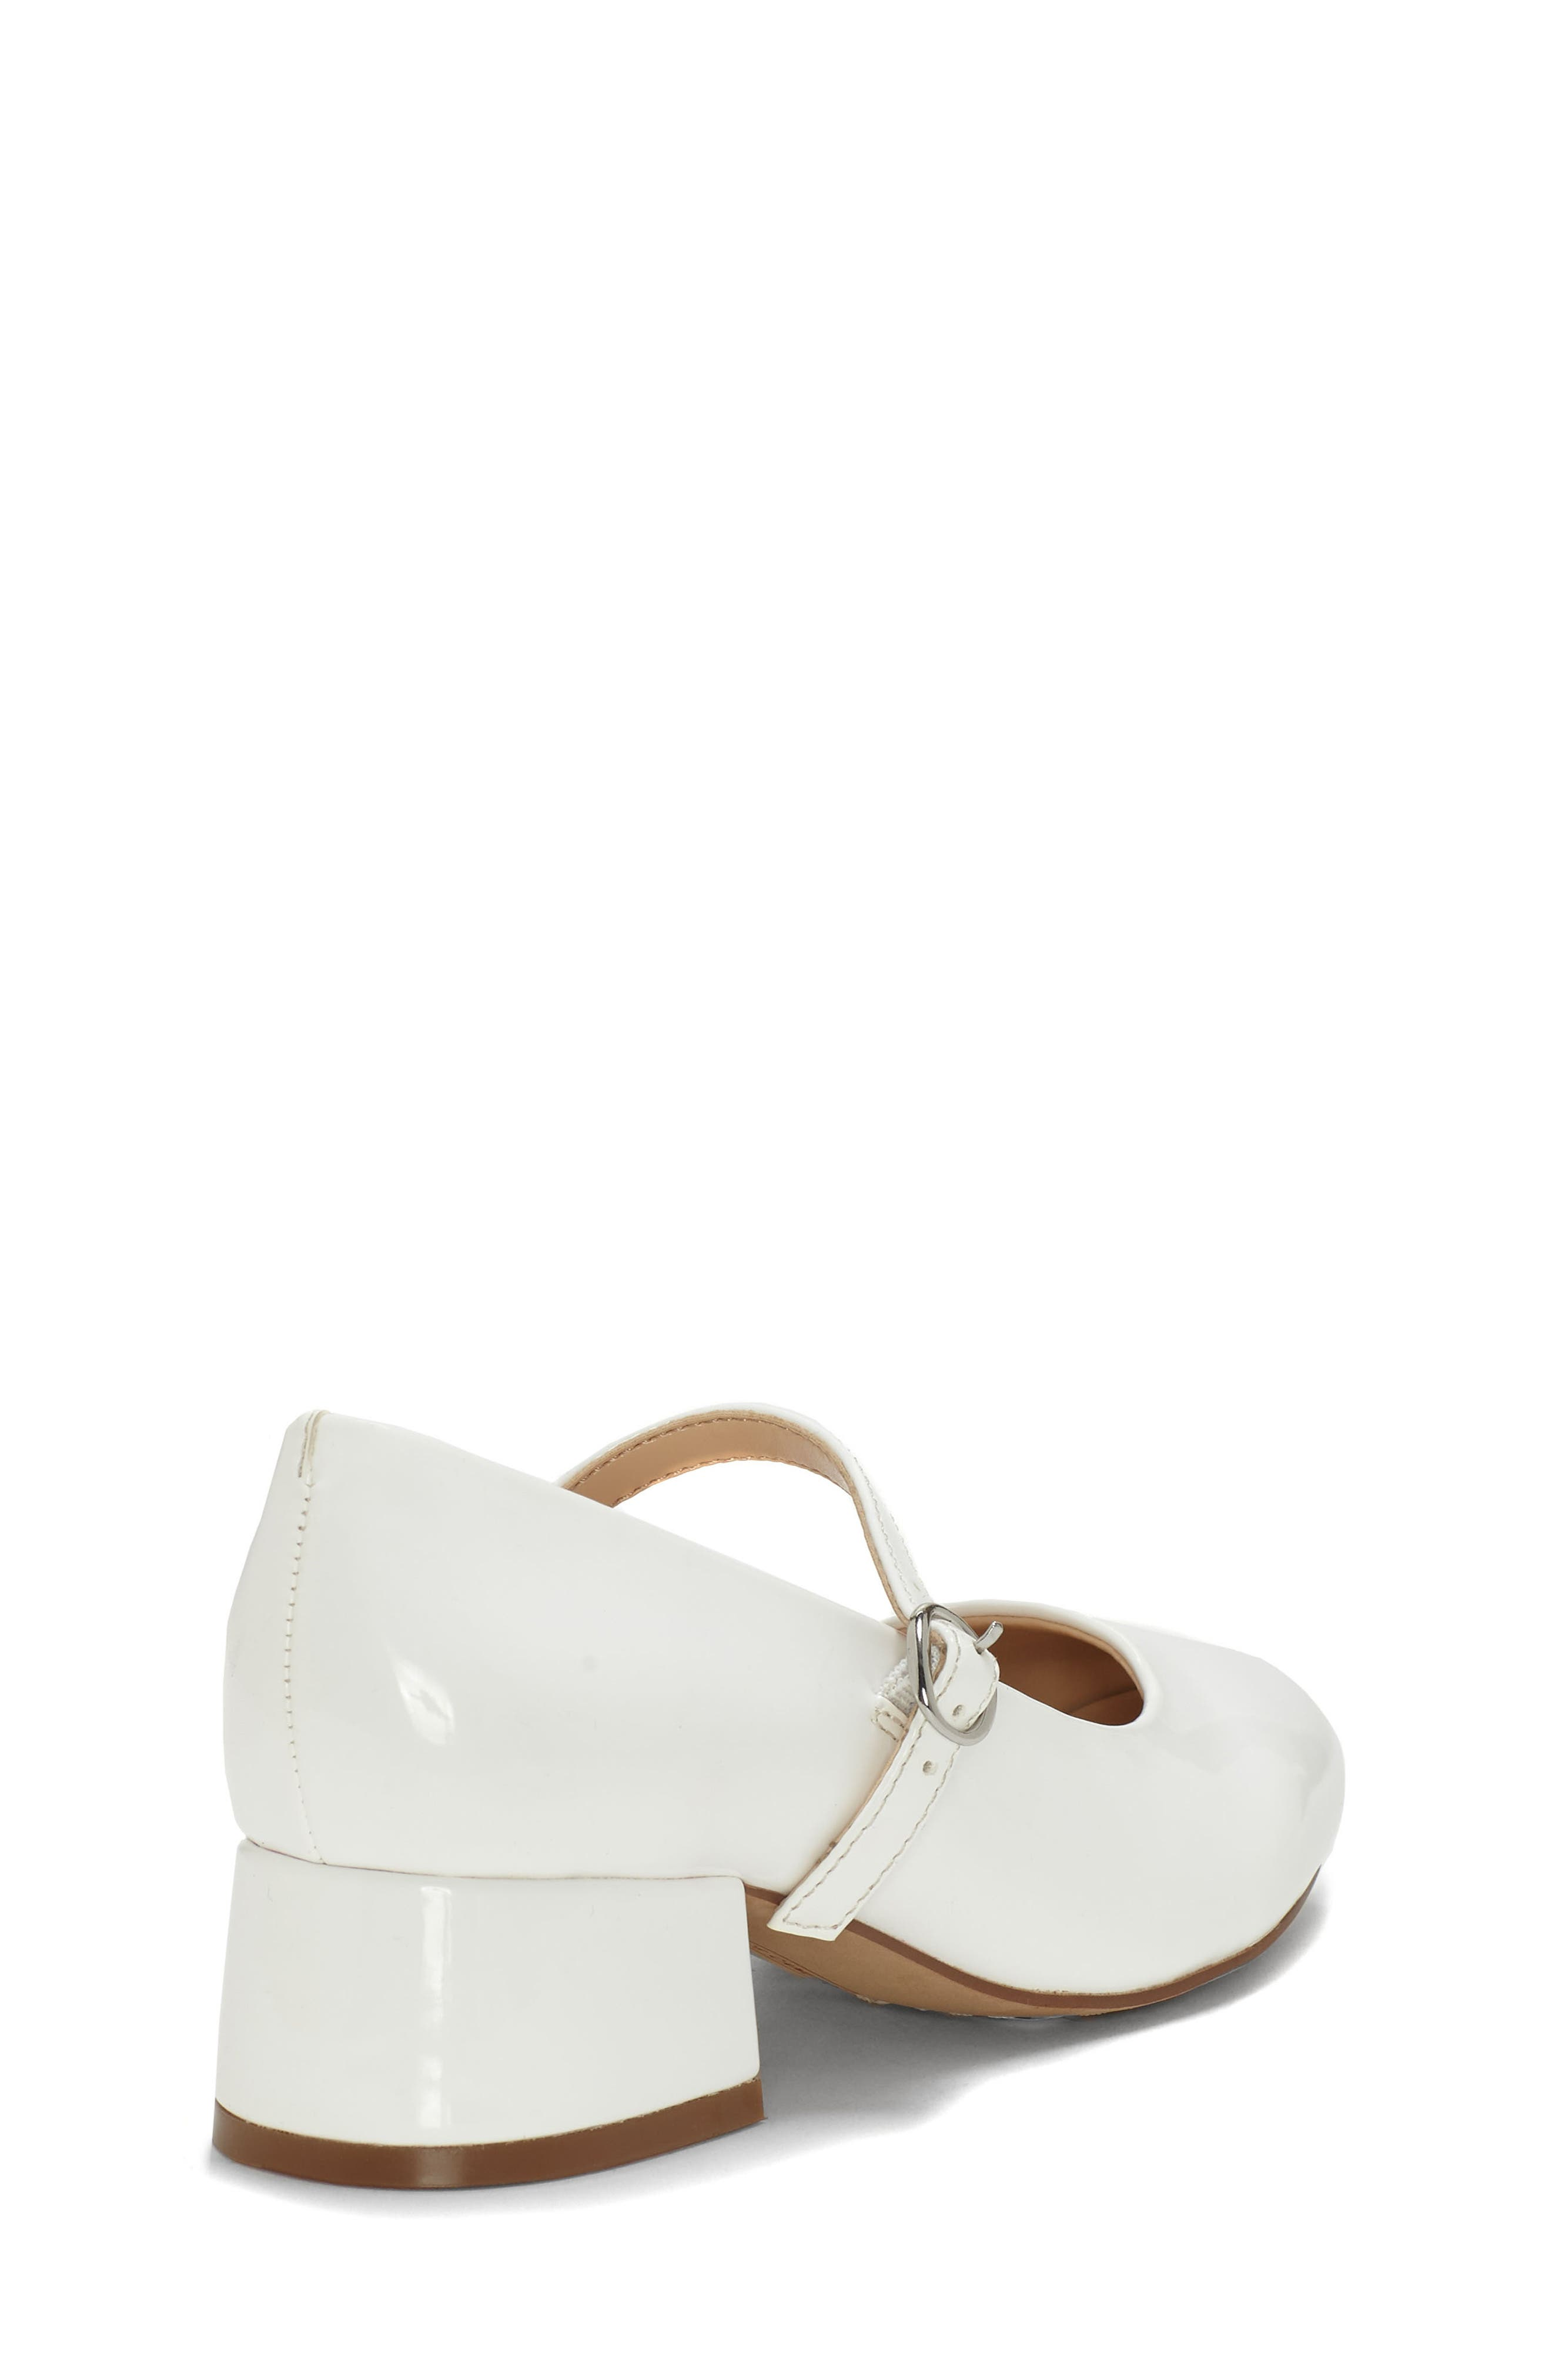 VINCE CAMUTO,                             Brenna Mary Jane Pump,                             Alternate thumbnail 4, color,                             WHITE